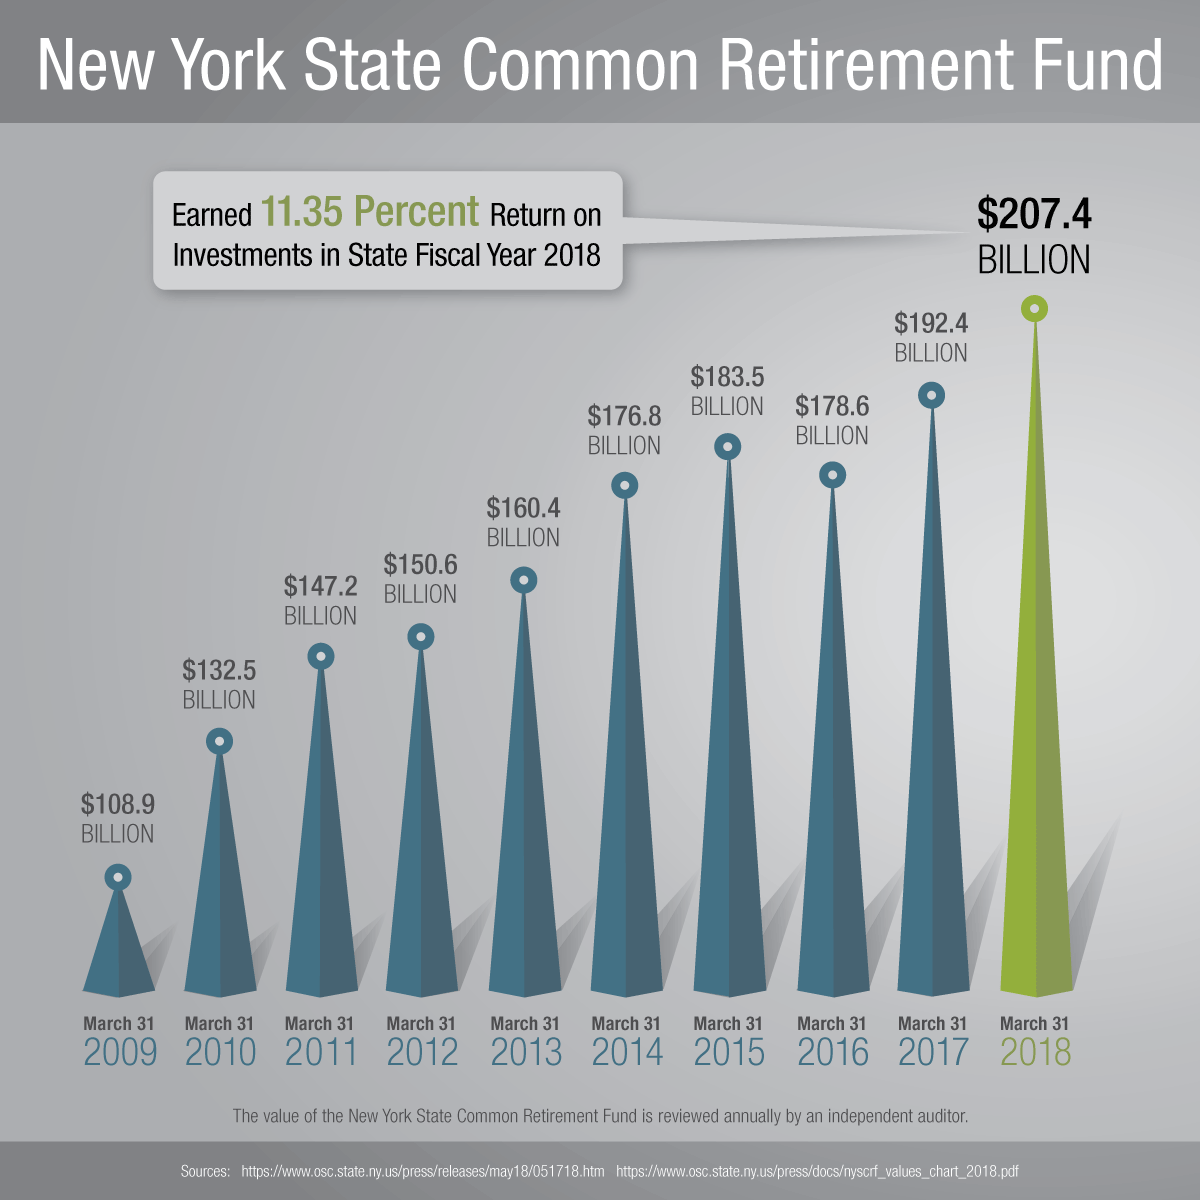 New York State Common Retirement Fund Value